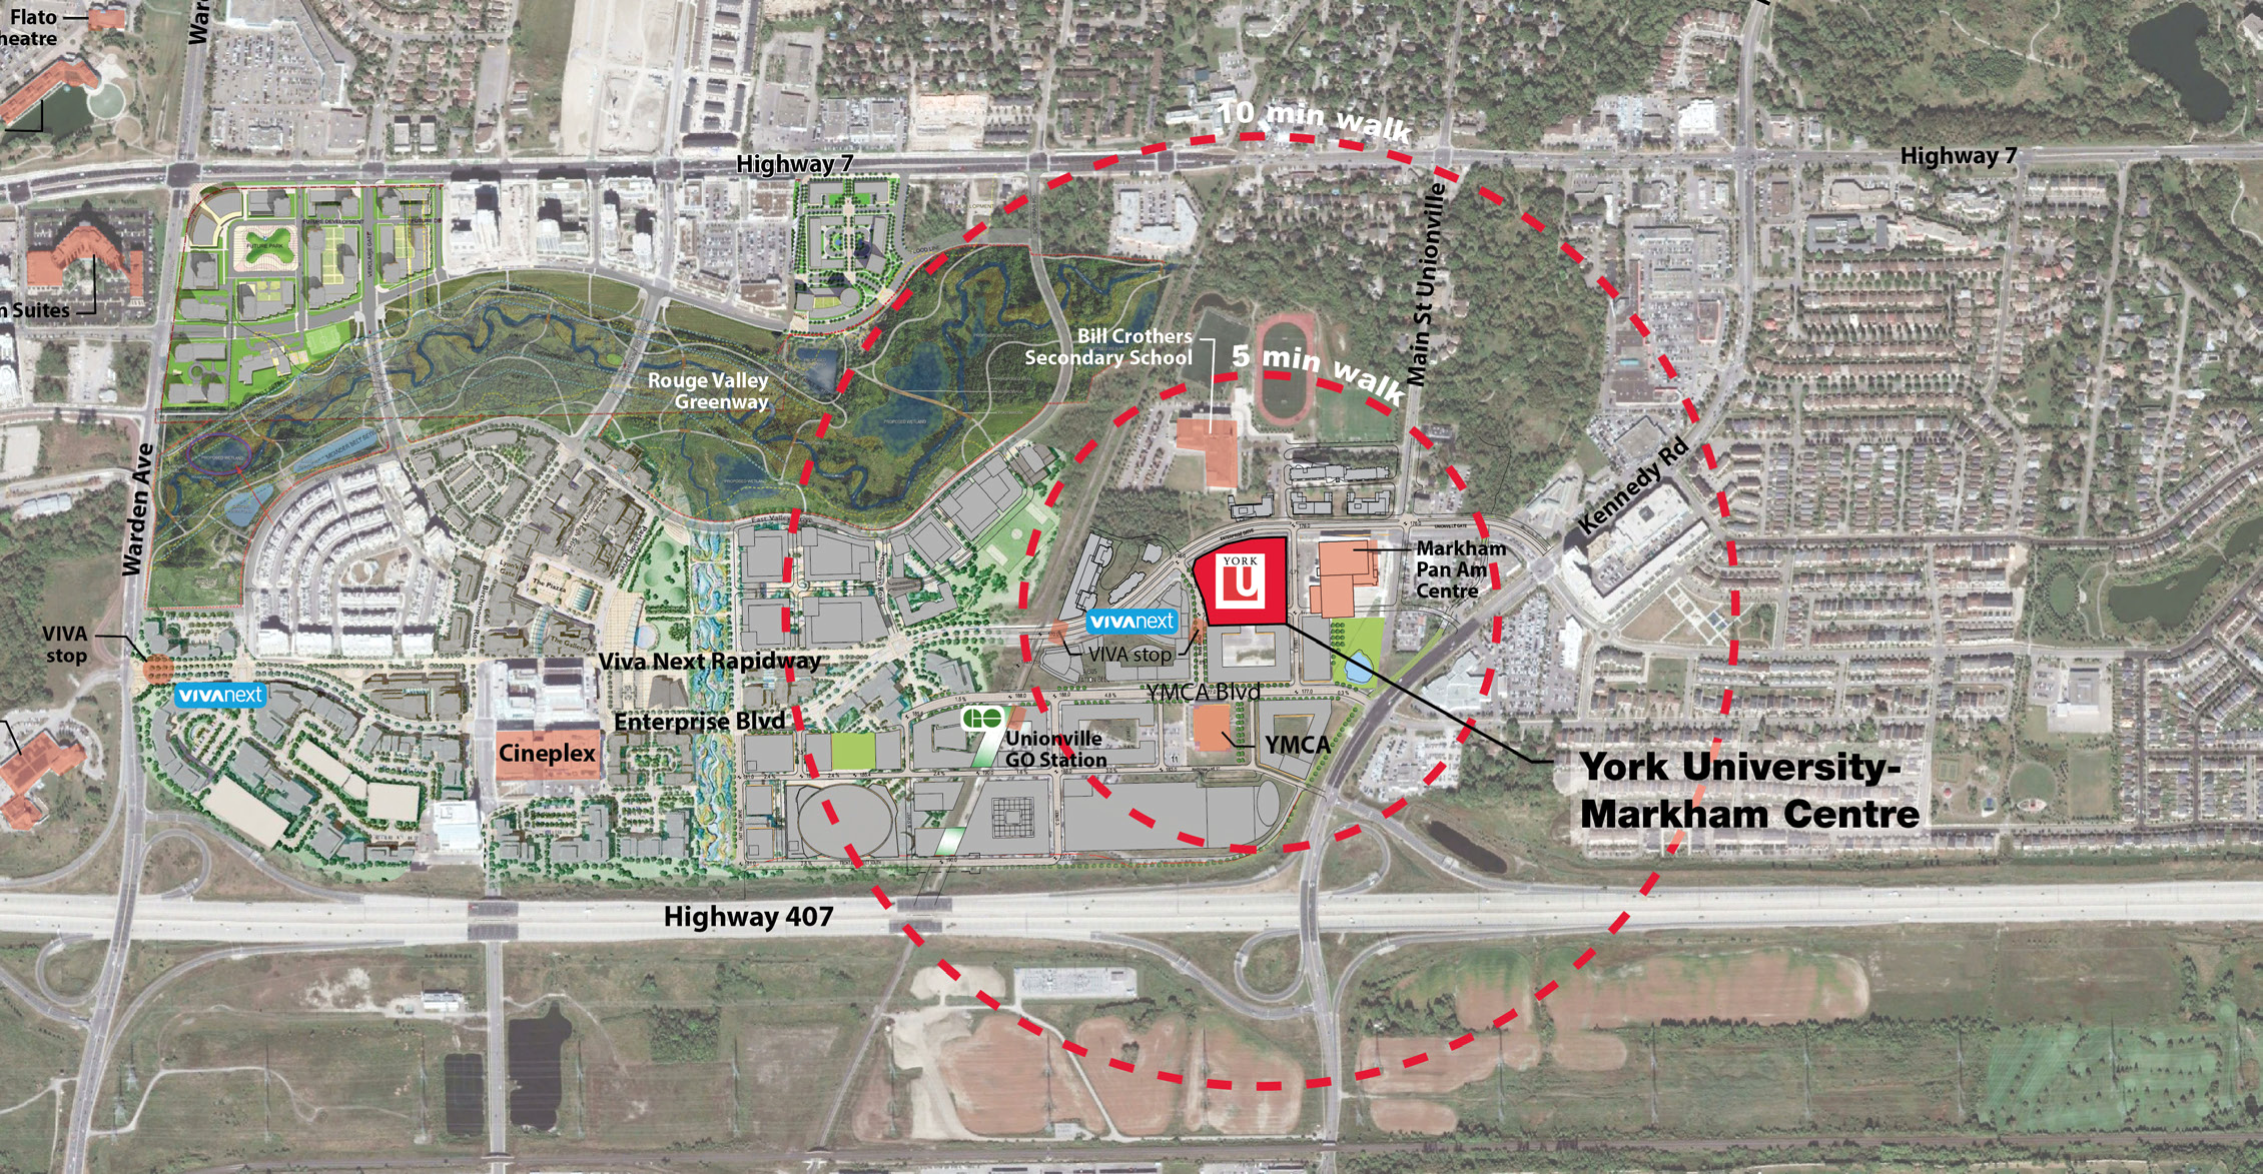 York University in Markham